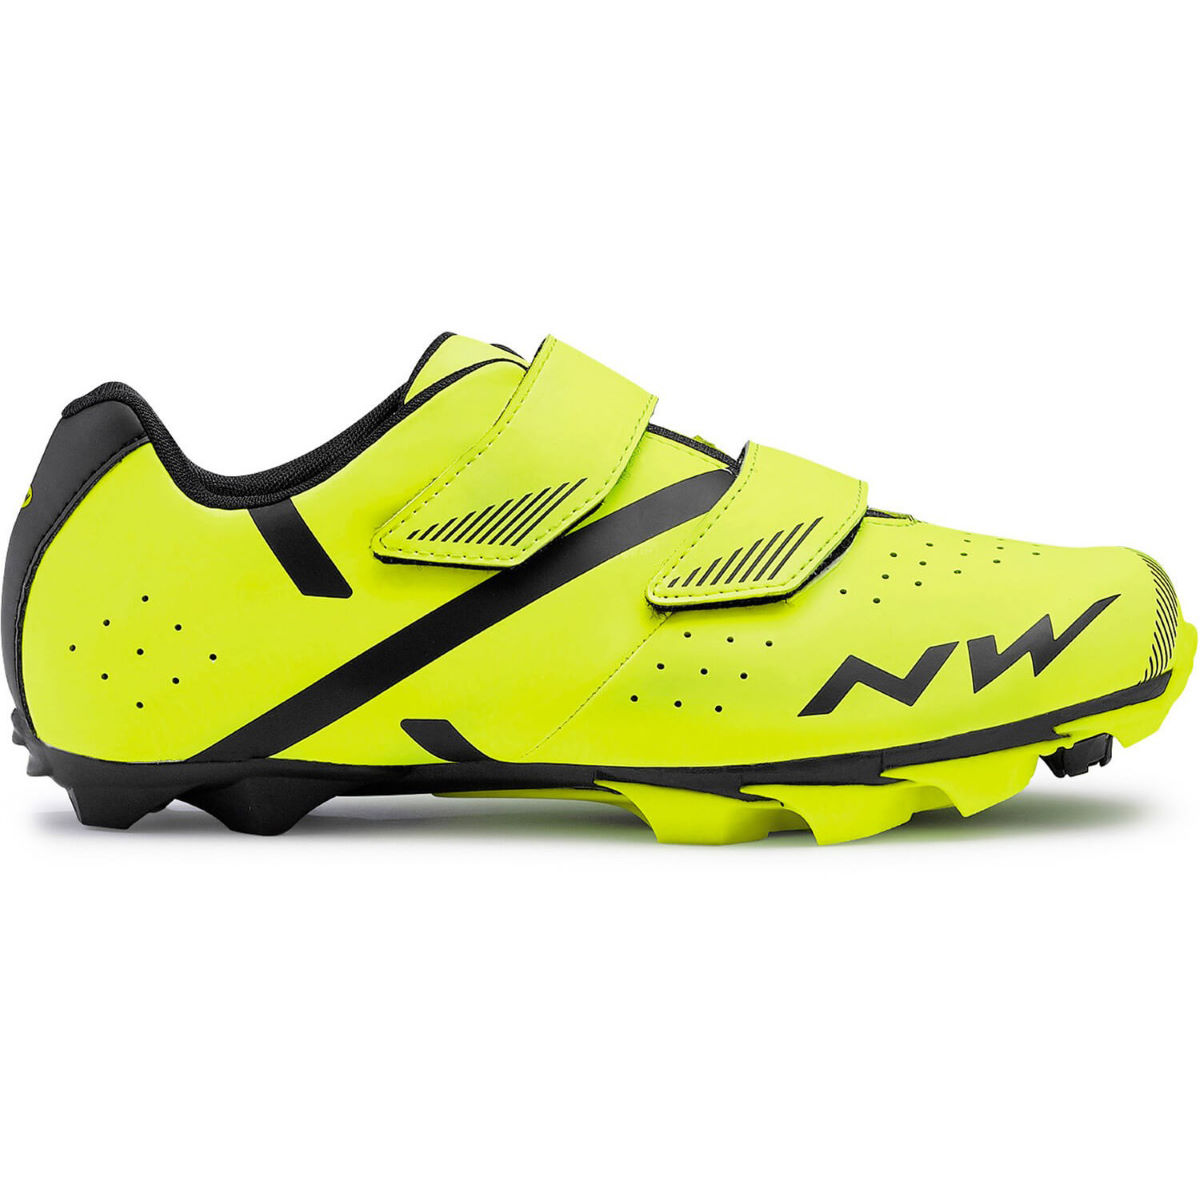 Northwave Northwave Spike 2 MTB Shoes   Cycling Shoes